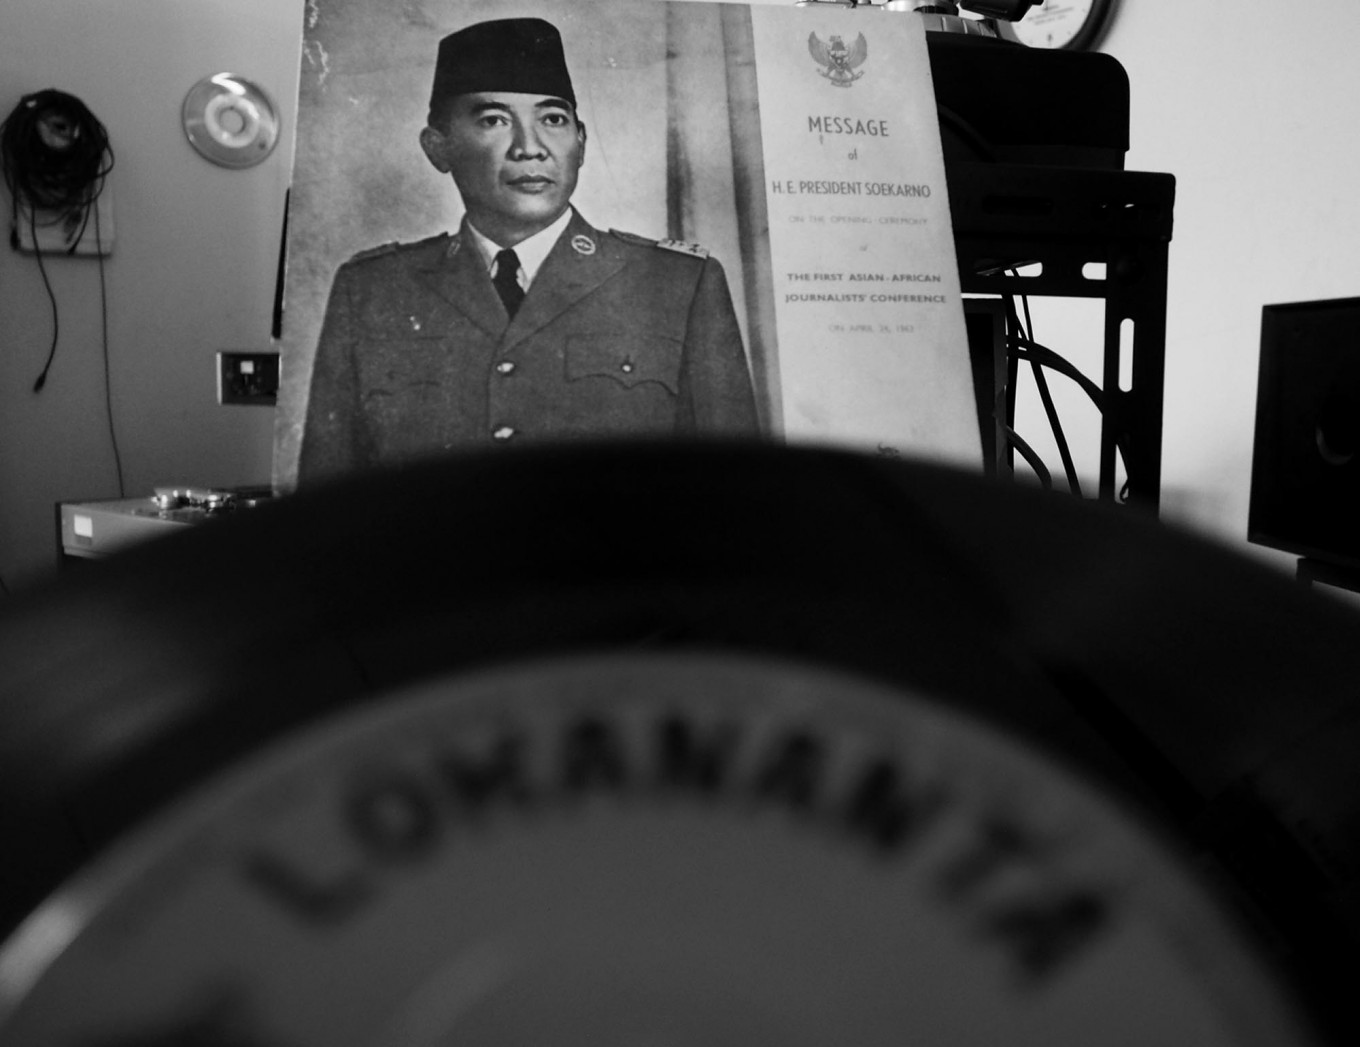 One precious vinyl features then president Sukarno's speech on Indonesia's declaration of independence on Aug. 17, 1945. JP/Ganug Nugroho Adi